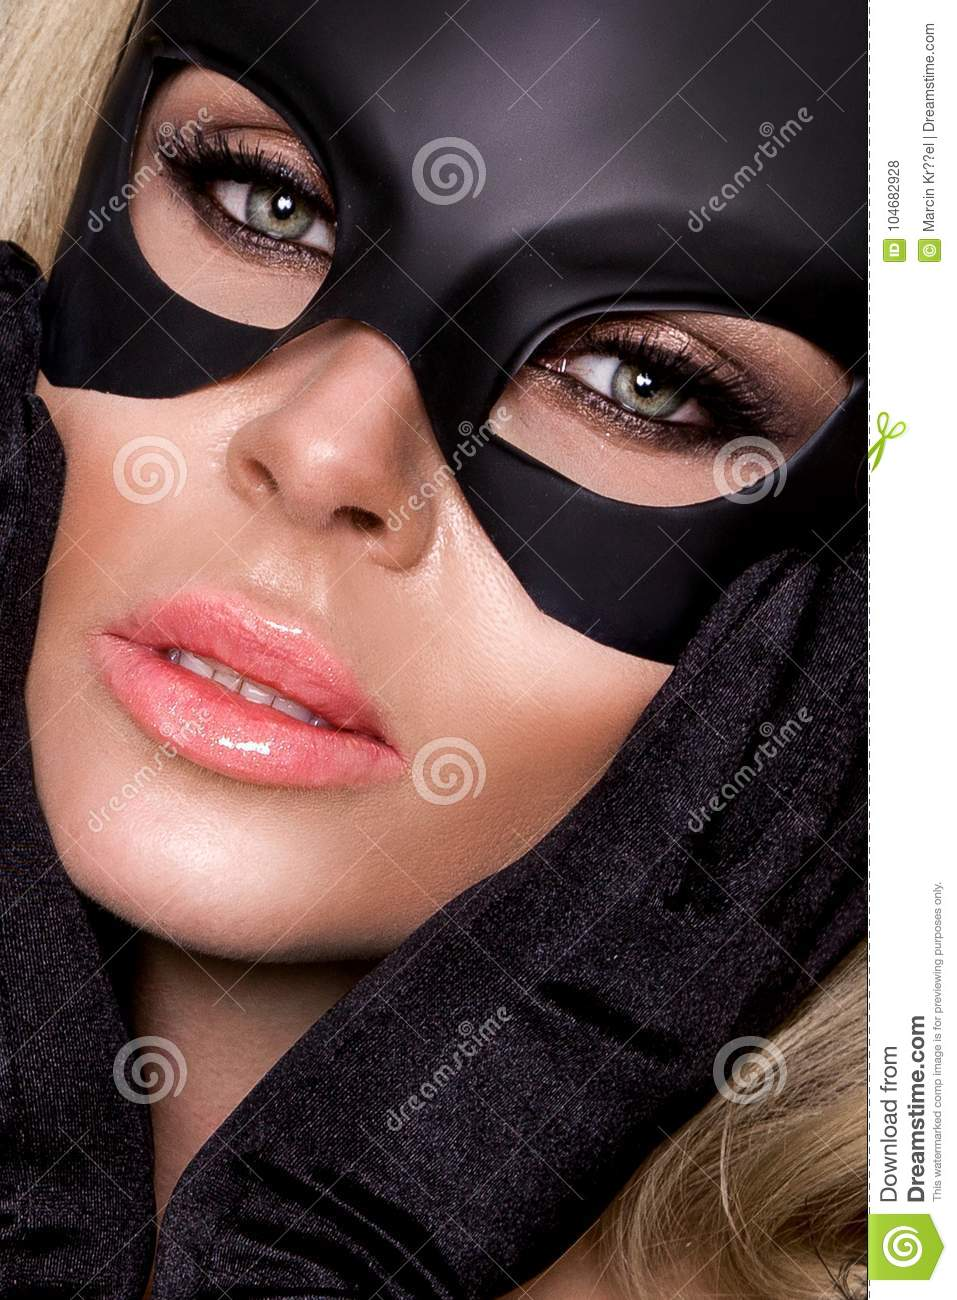 Beauty women: masks for breasts 34